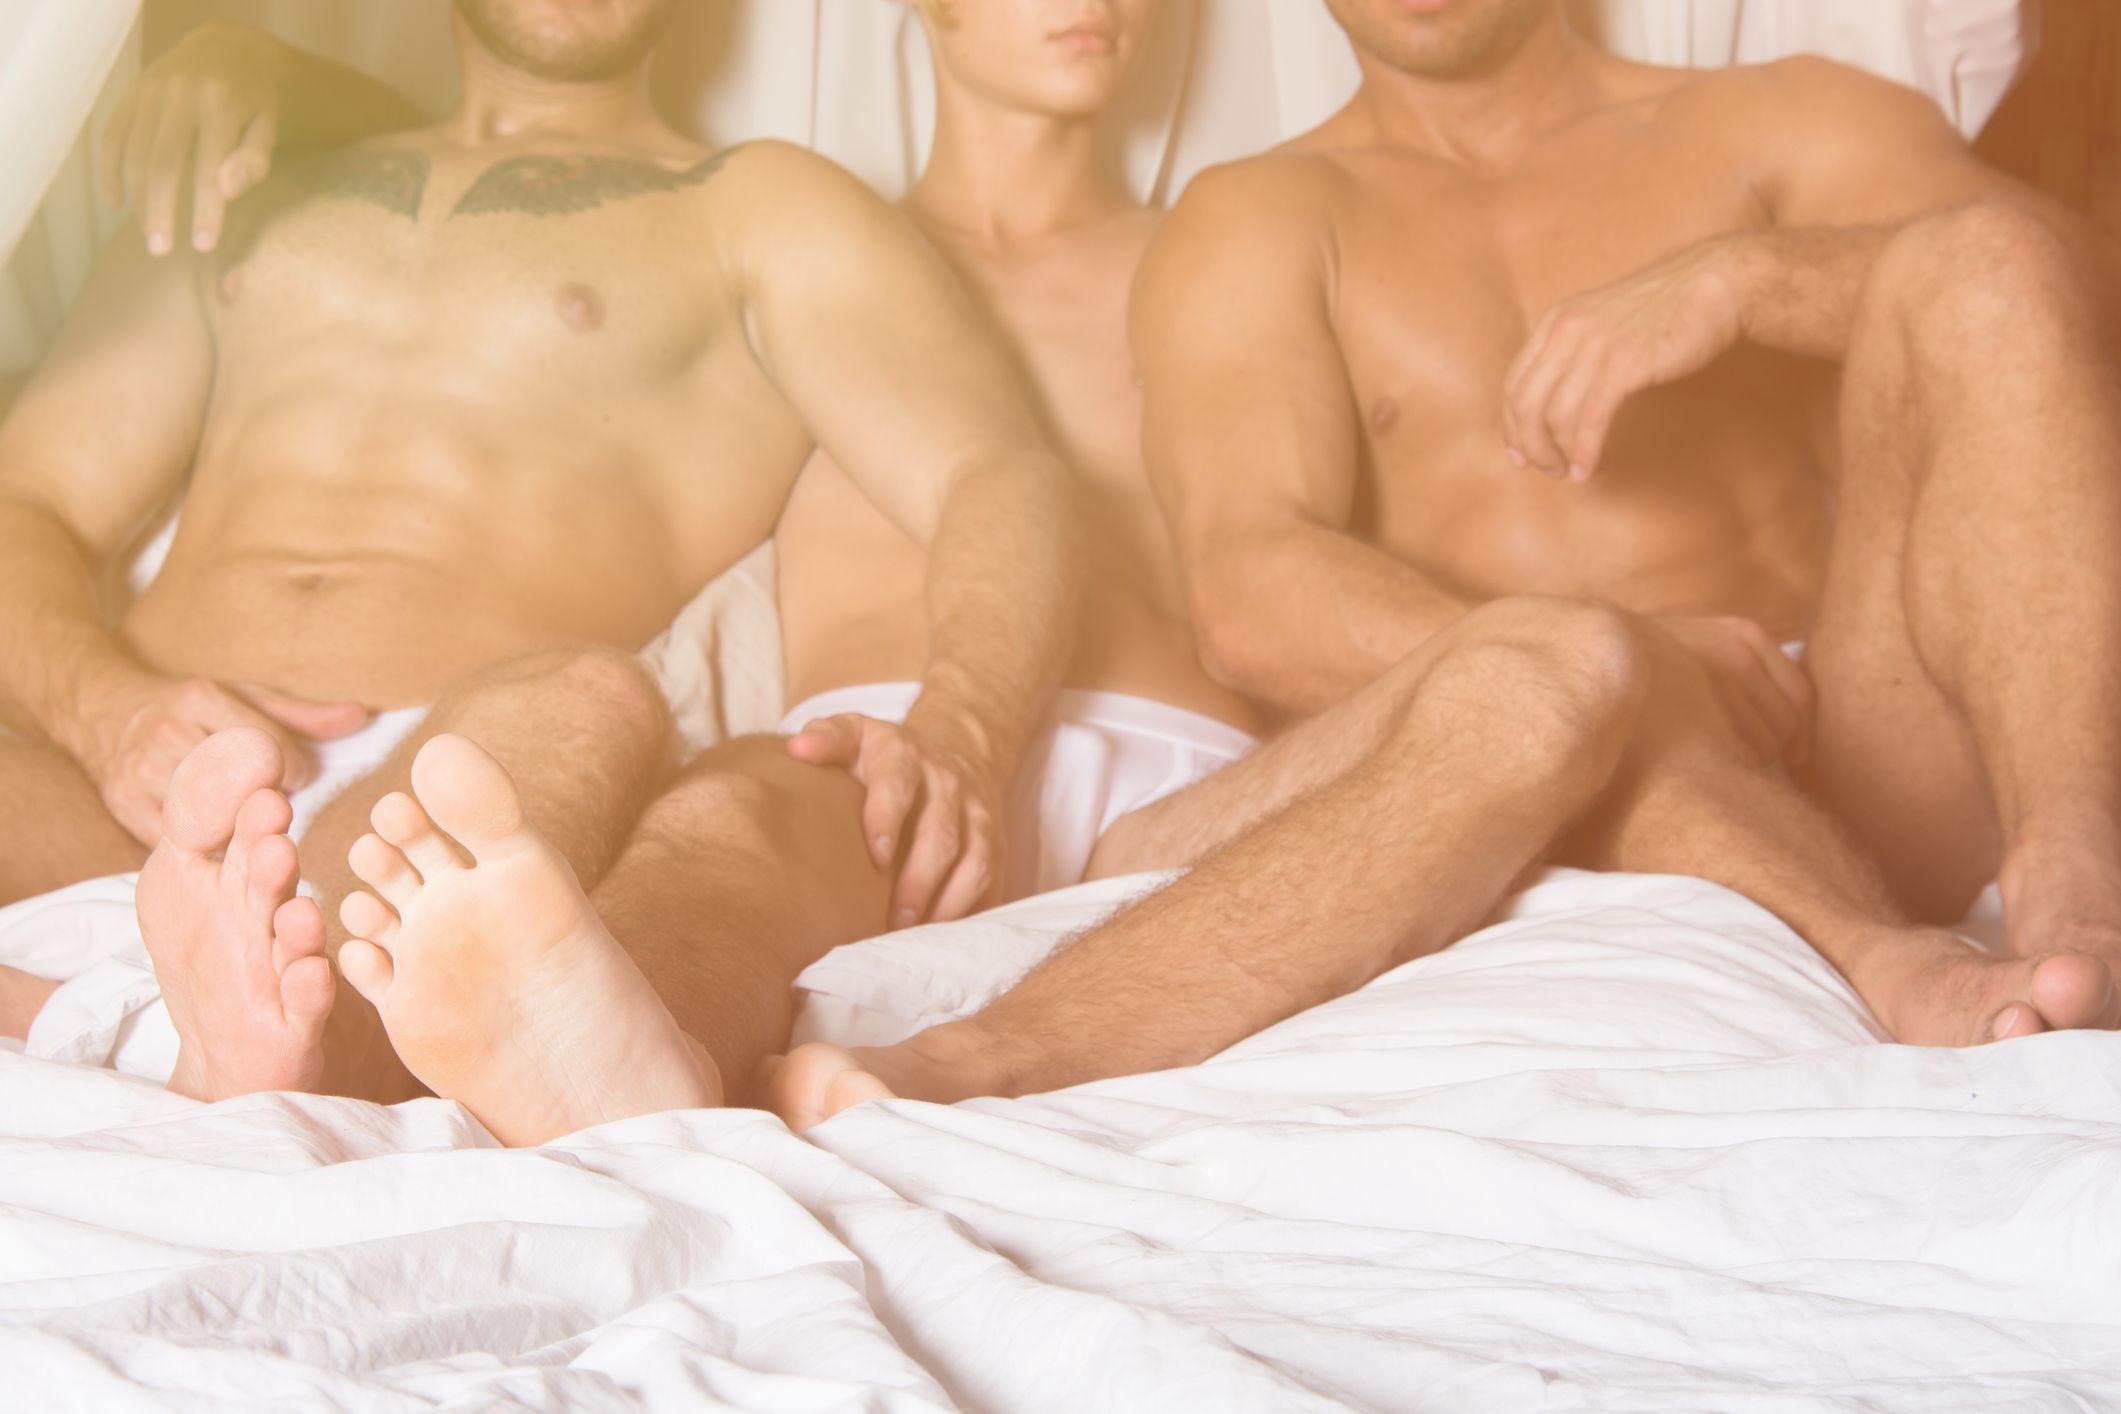 I'm Okay With My Partner Topping Other Men. Bottoming Is Another Story.